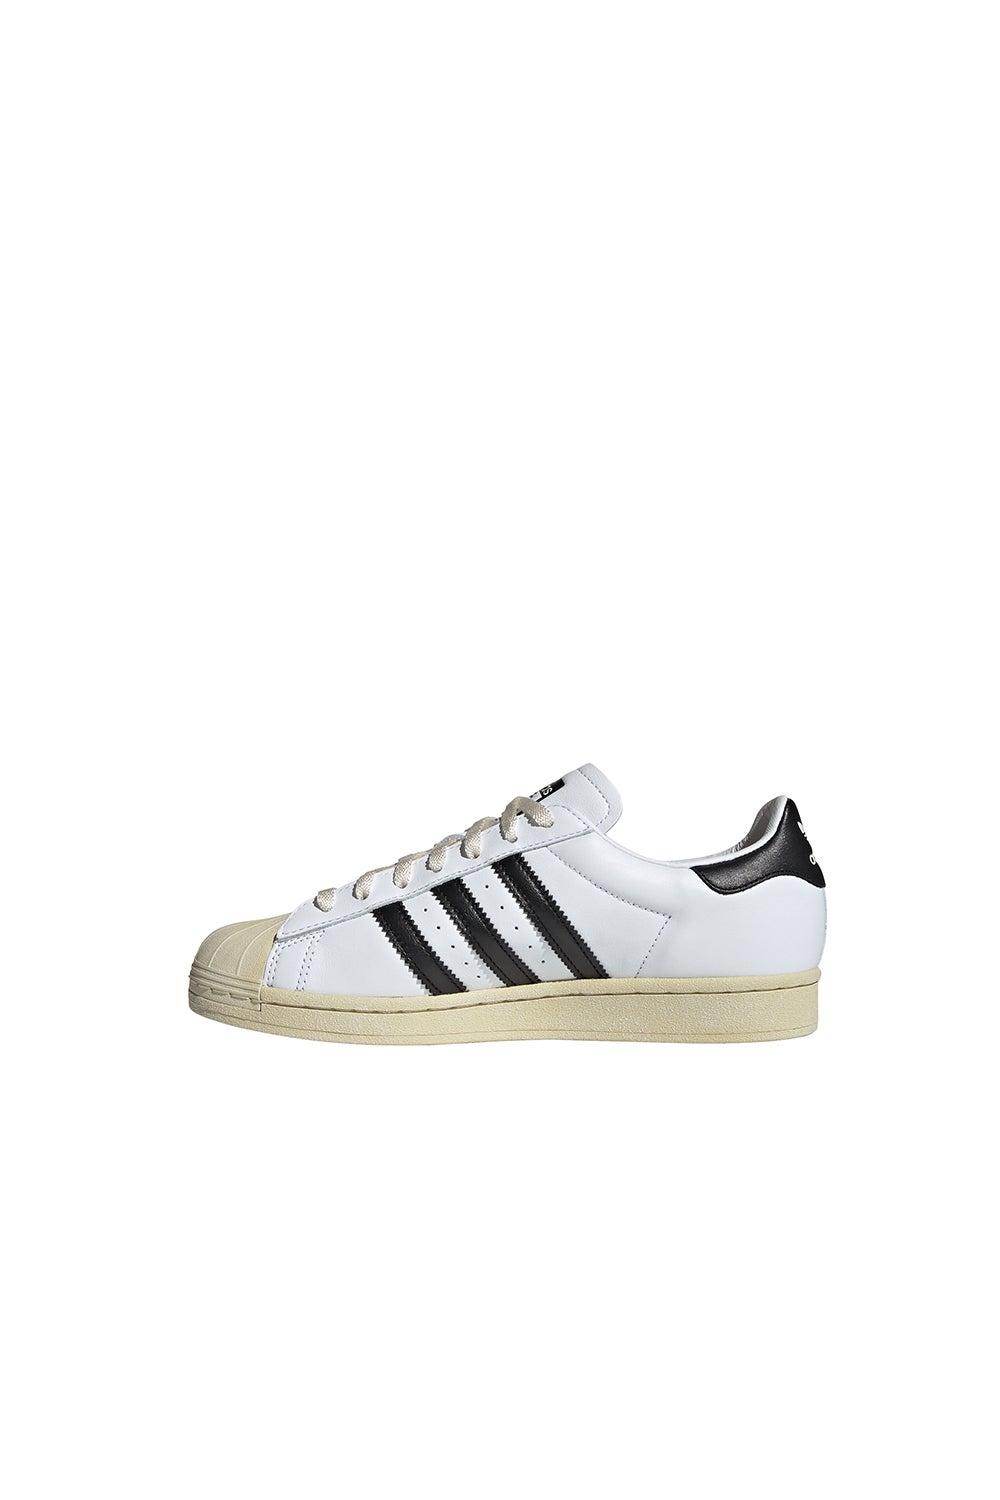 adidas Superstar Shoes Cloud White